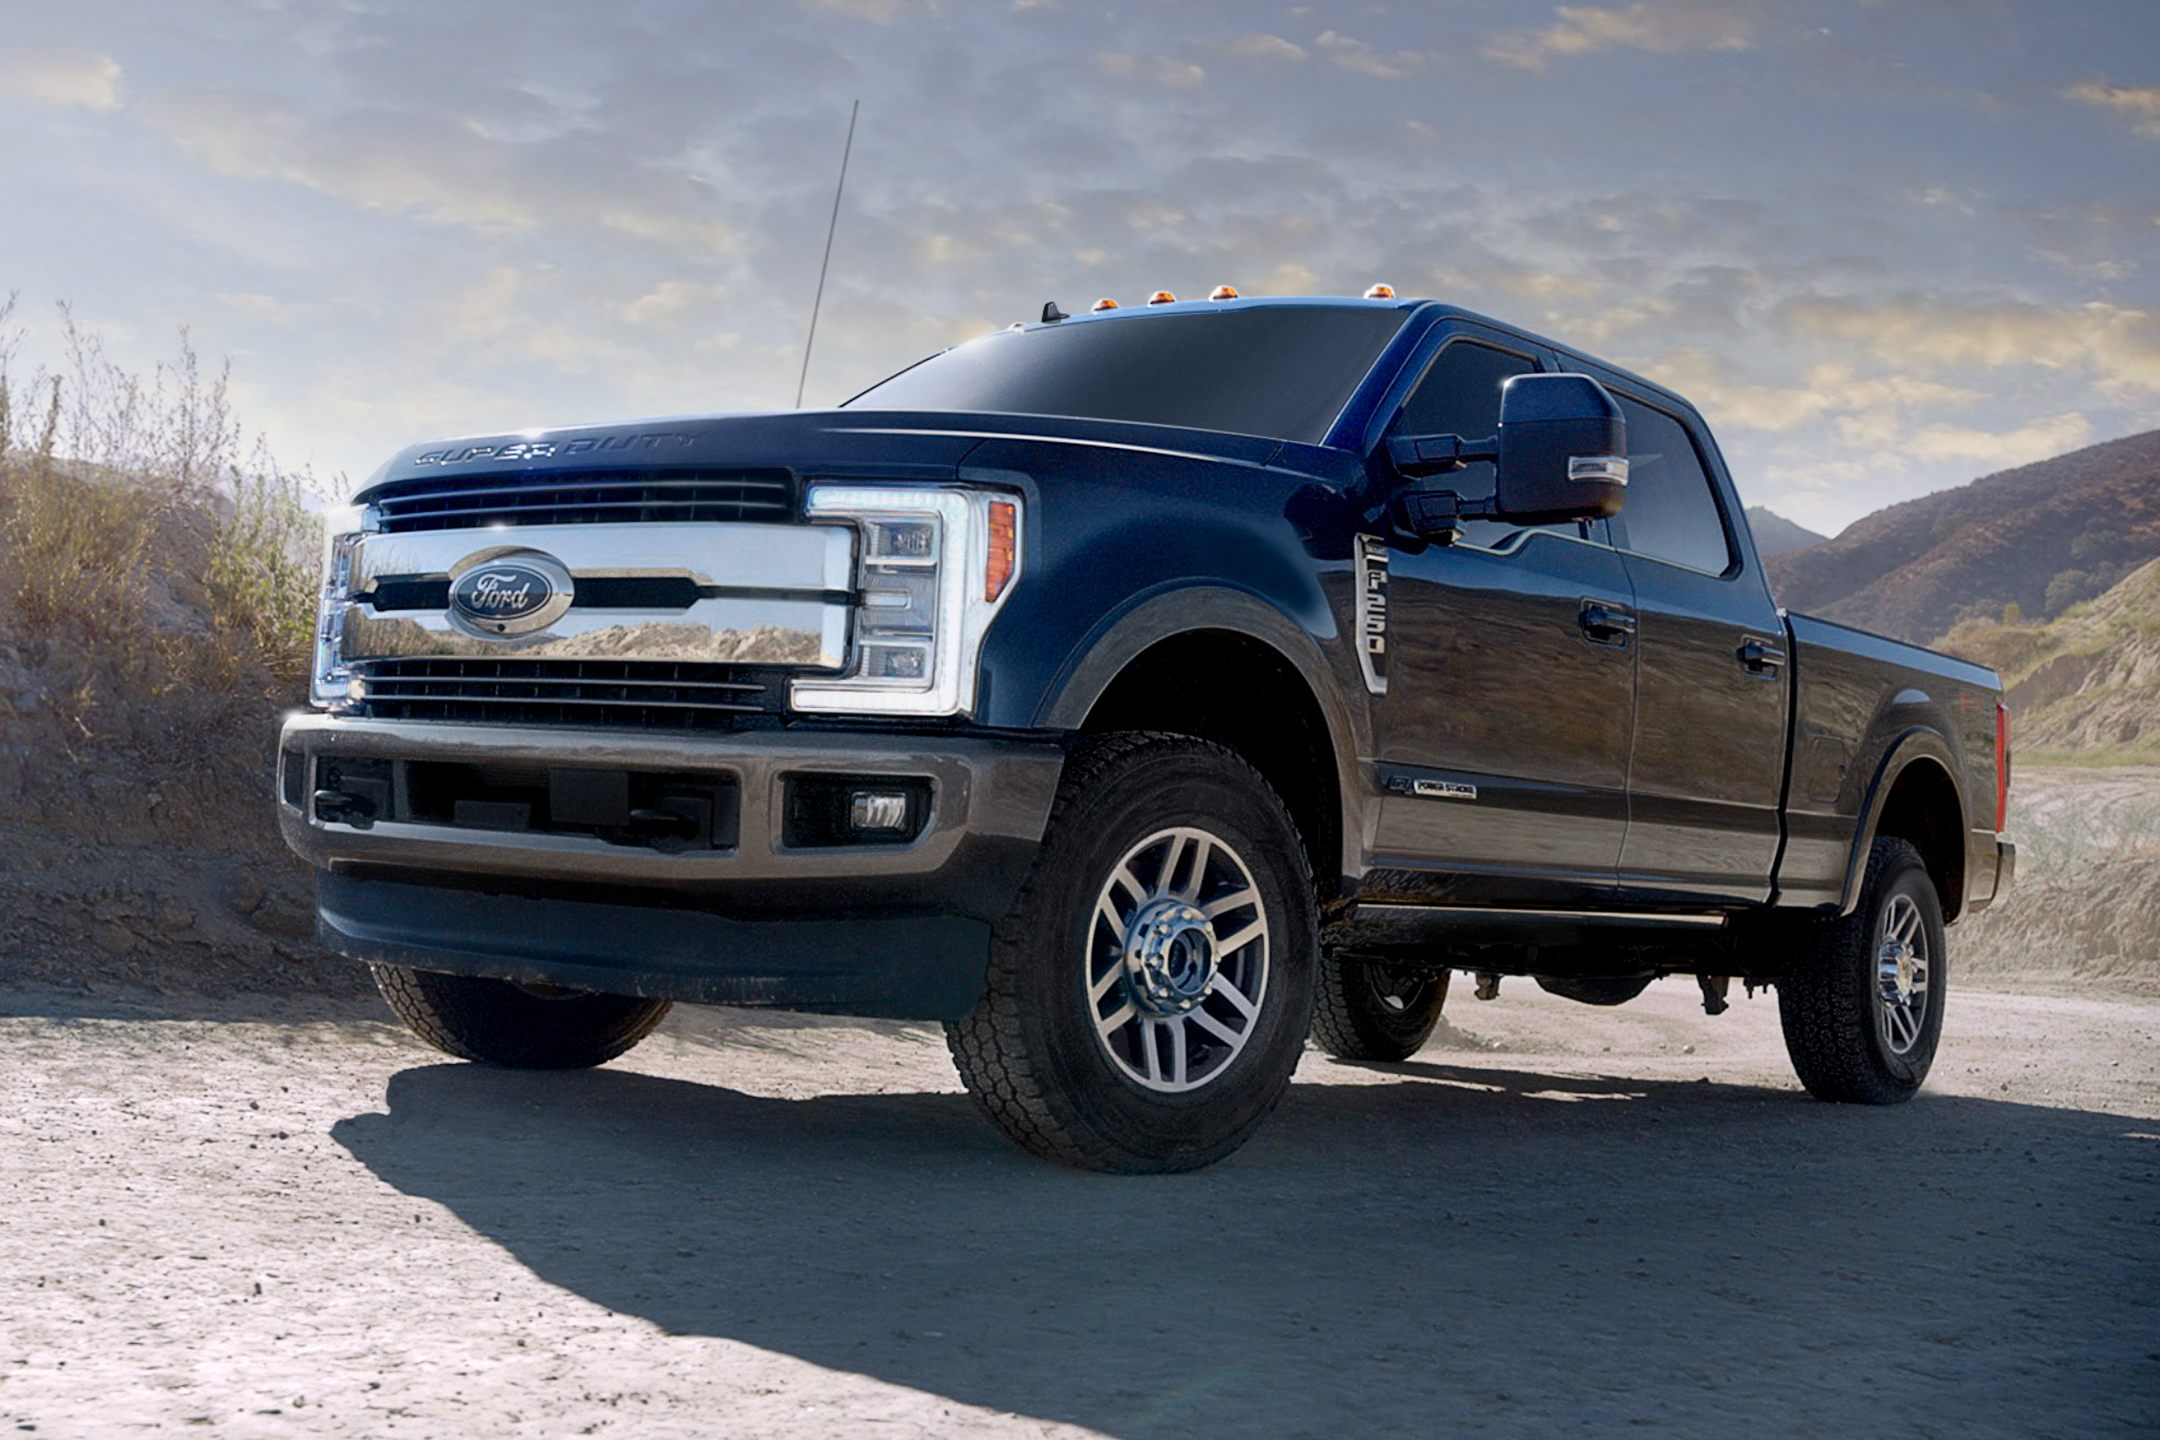 2019 F-150 vs F-250 vs F-350: Differences & Similarities Guide